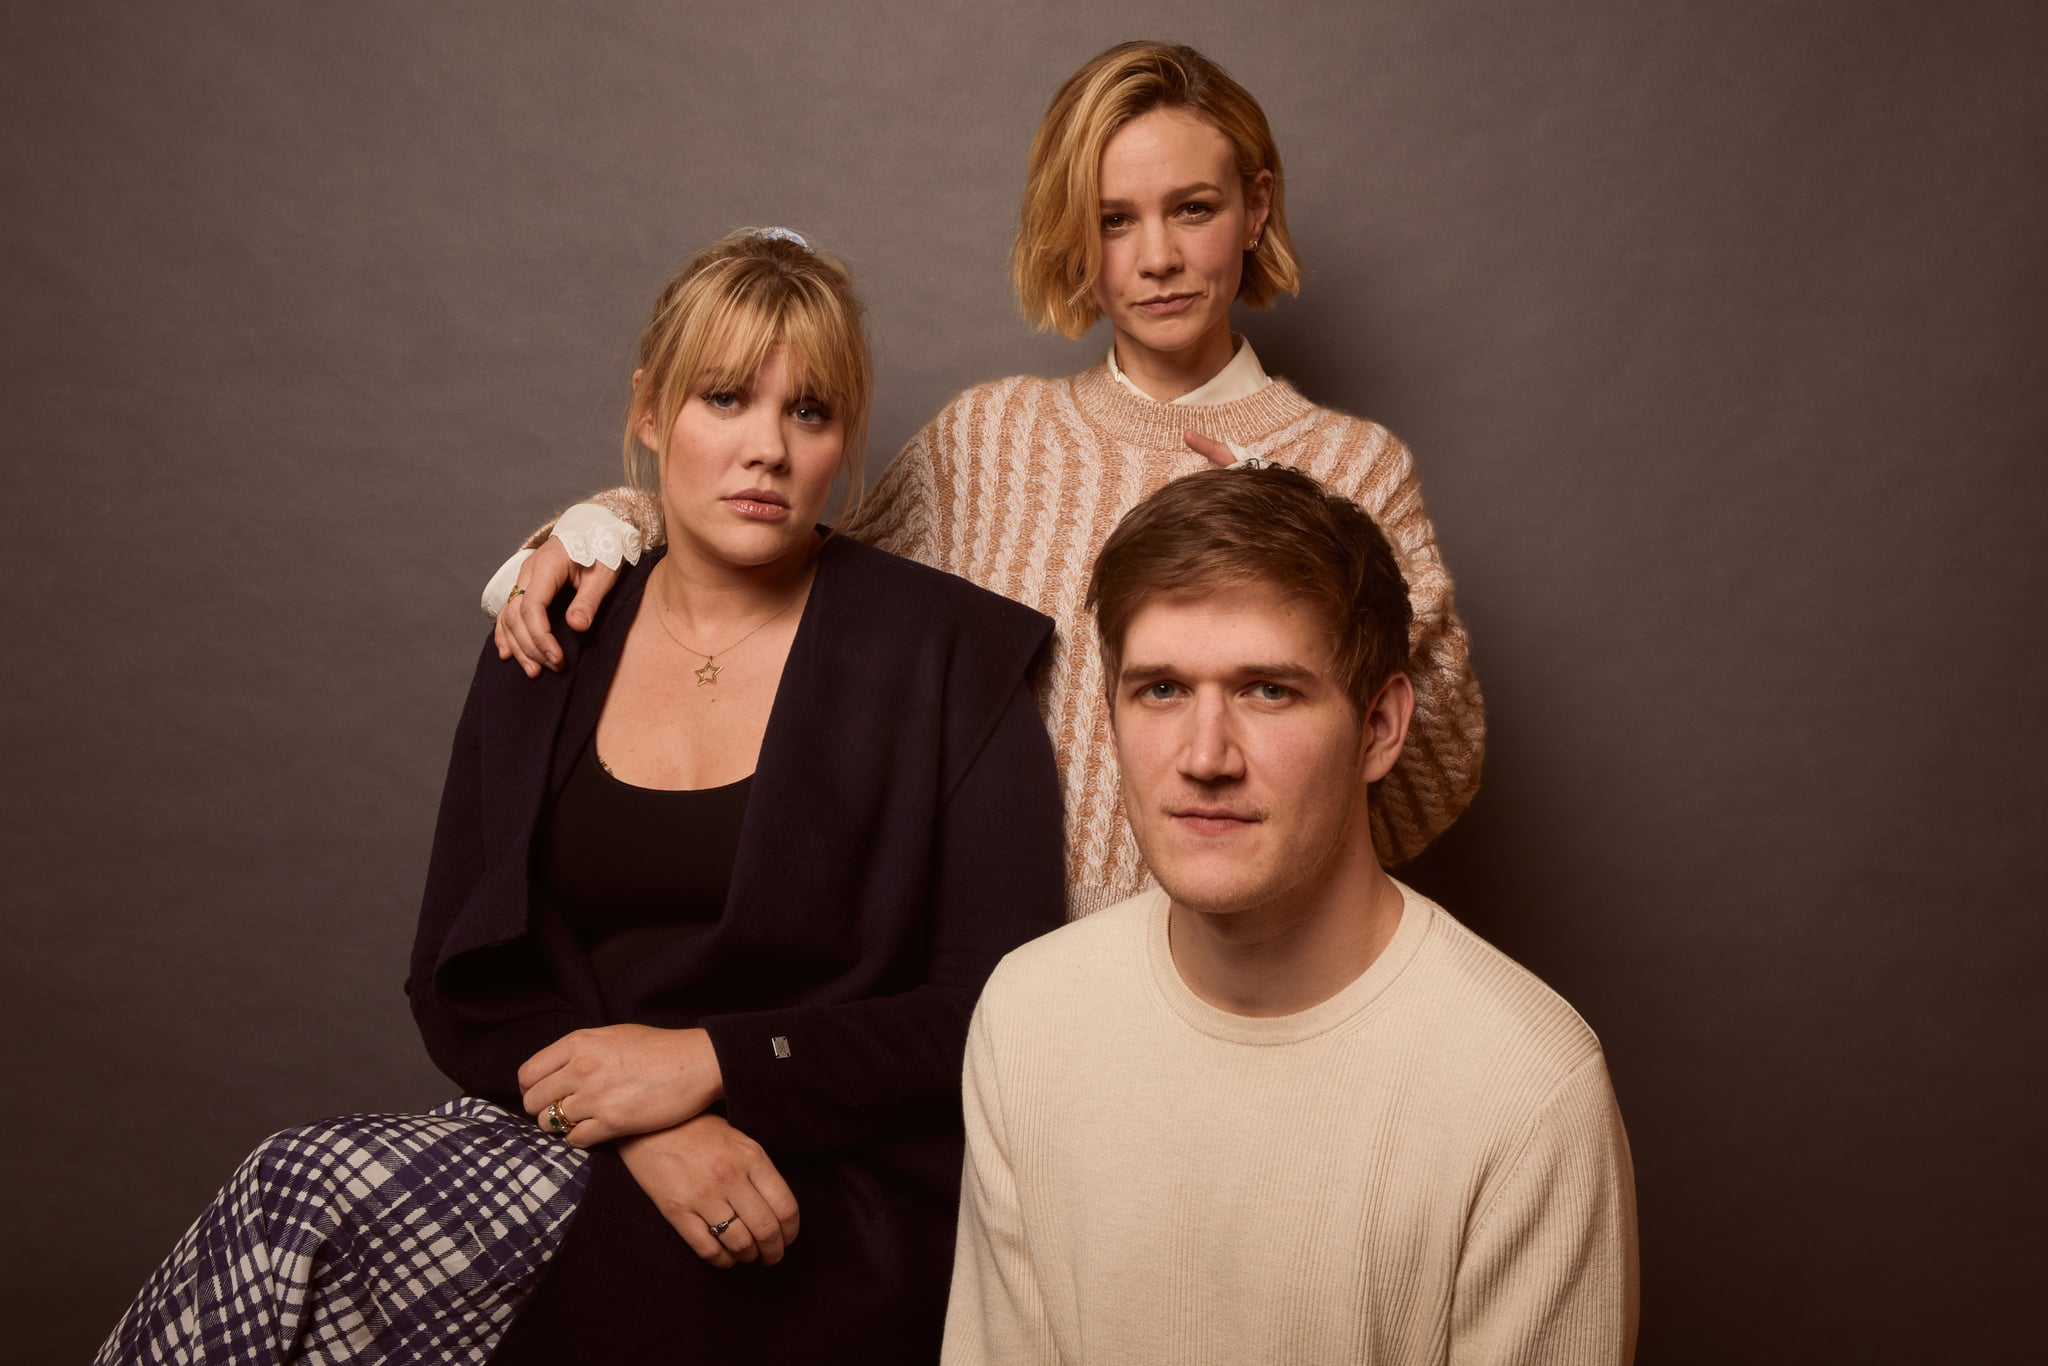 PARK CITY, UT - JANUARY 25: Emerald Fennell, Carey Mulligan, and Bo Burnham from Promising Young Woman pose for a portrait at the Pizza Hut Lounge on January 25, 2020 in Park City, Utah. (Photo by Emily Assiran/Getty Images for Pizza Hut)